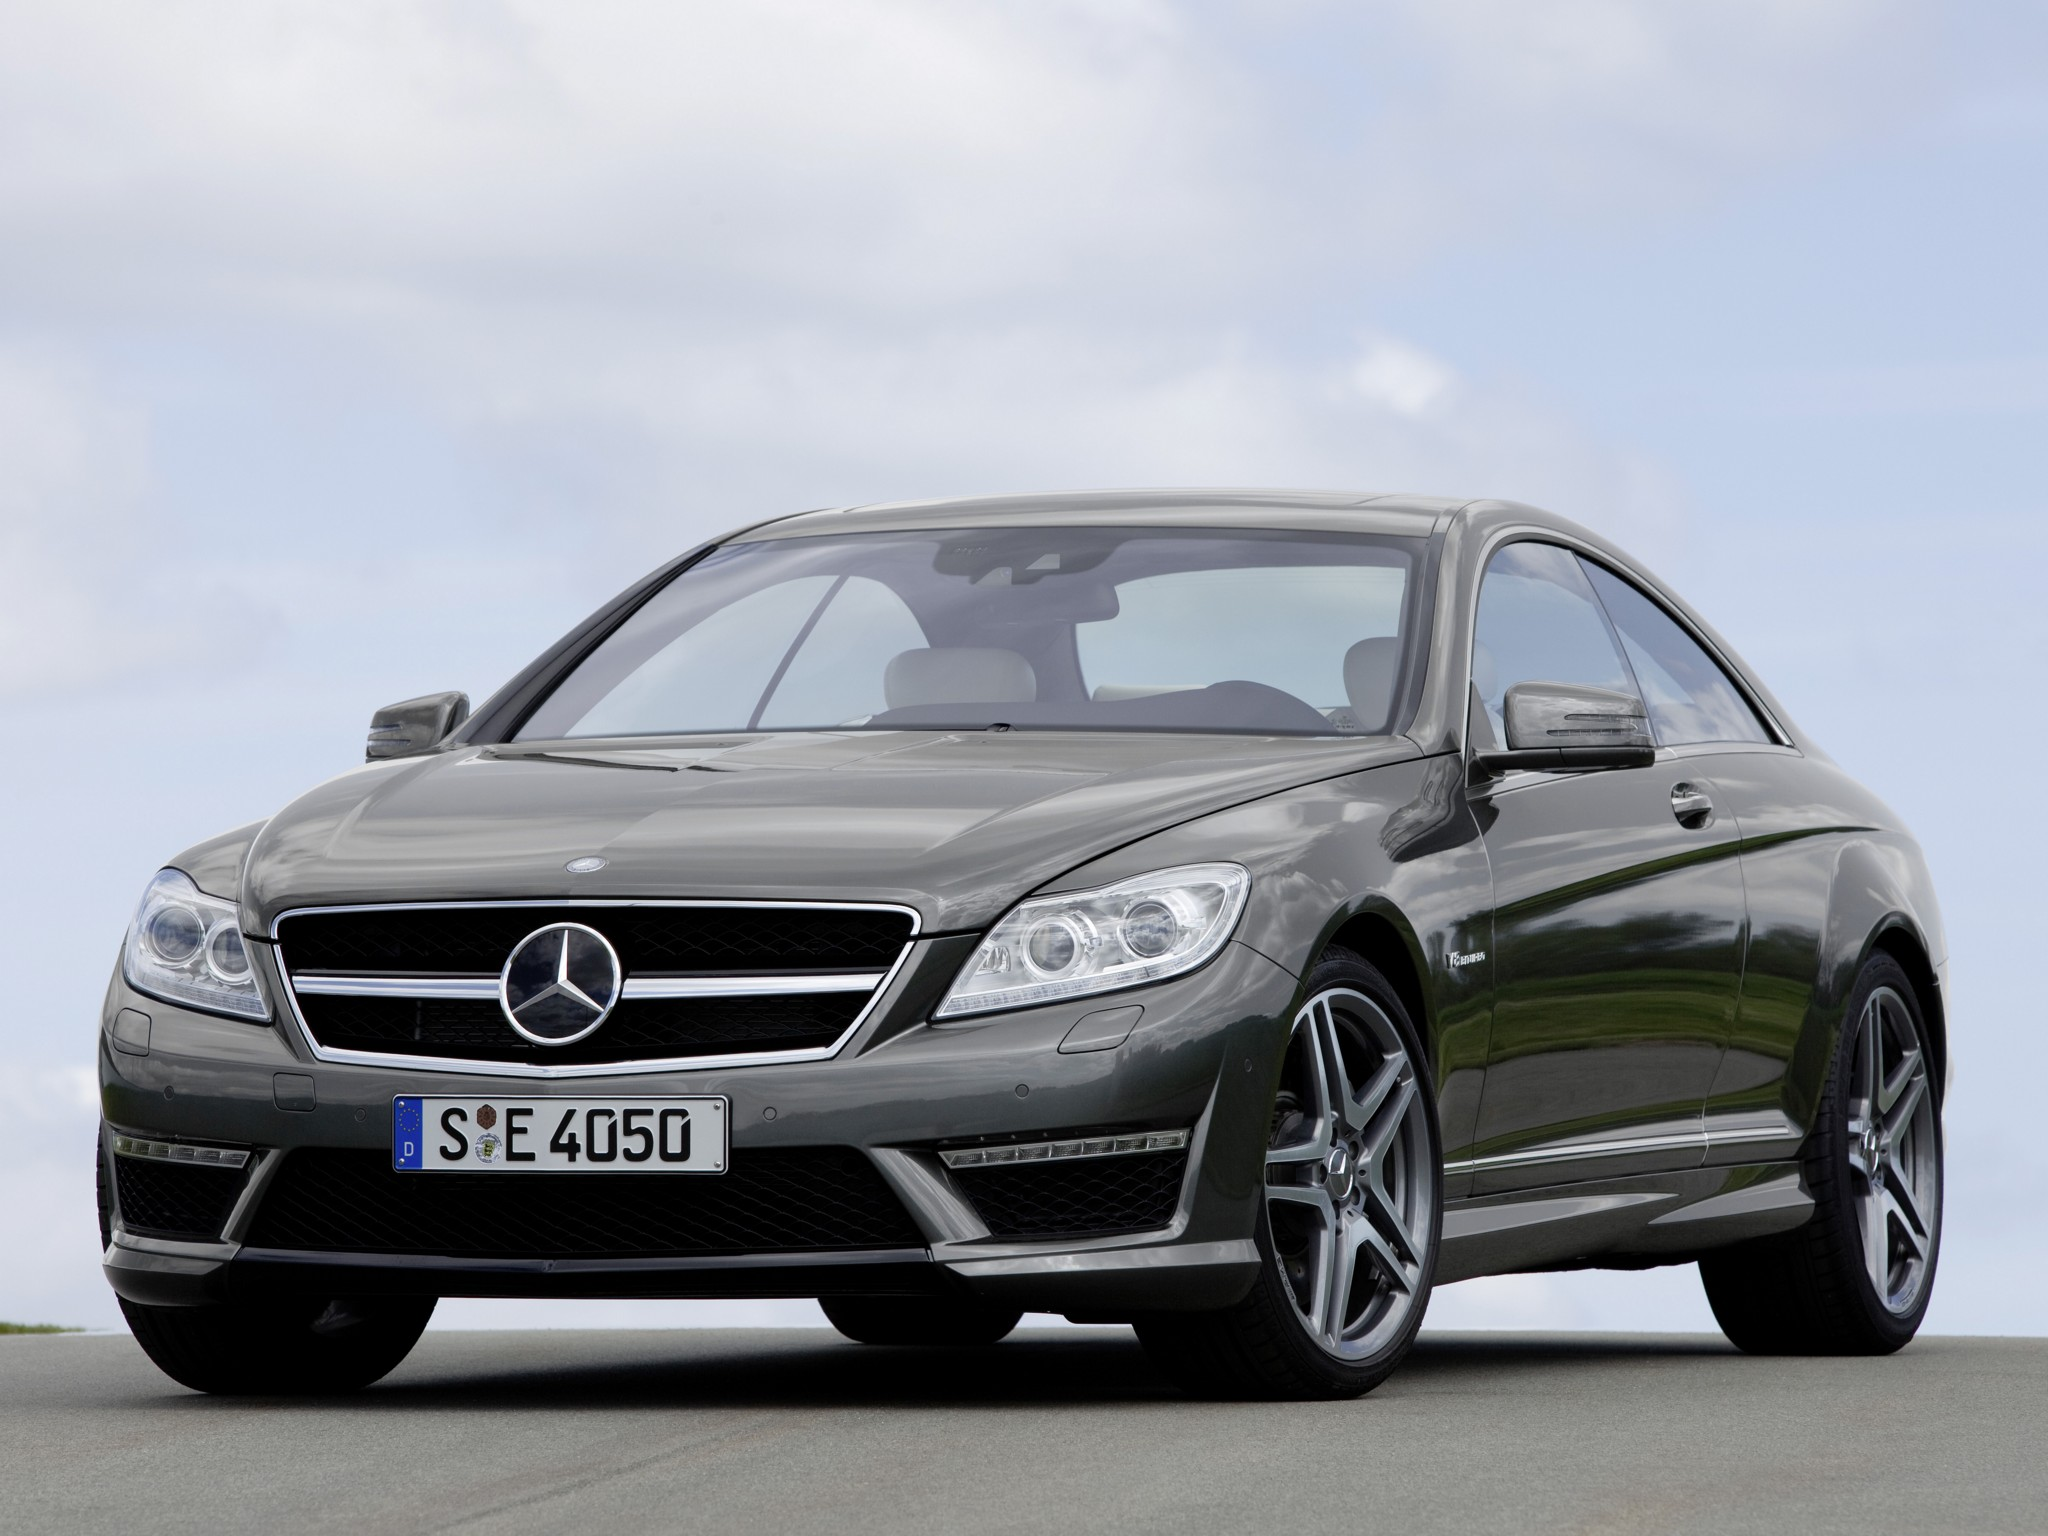 Mercedes benz cl 63 amg c216 specs 2012 2013 for Mercedes benz specs